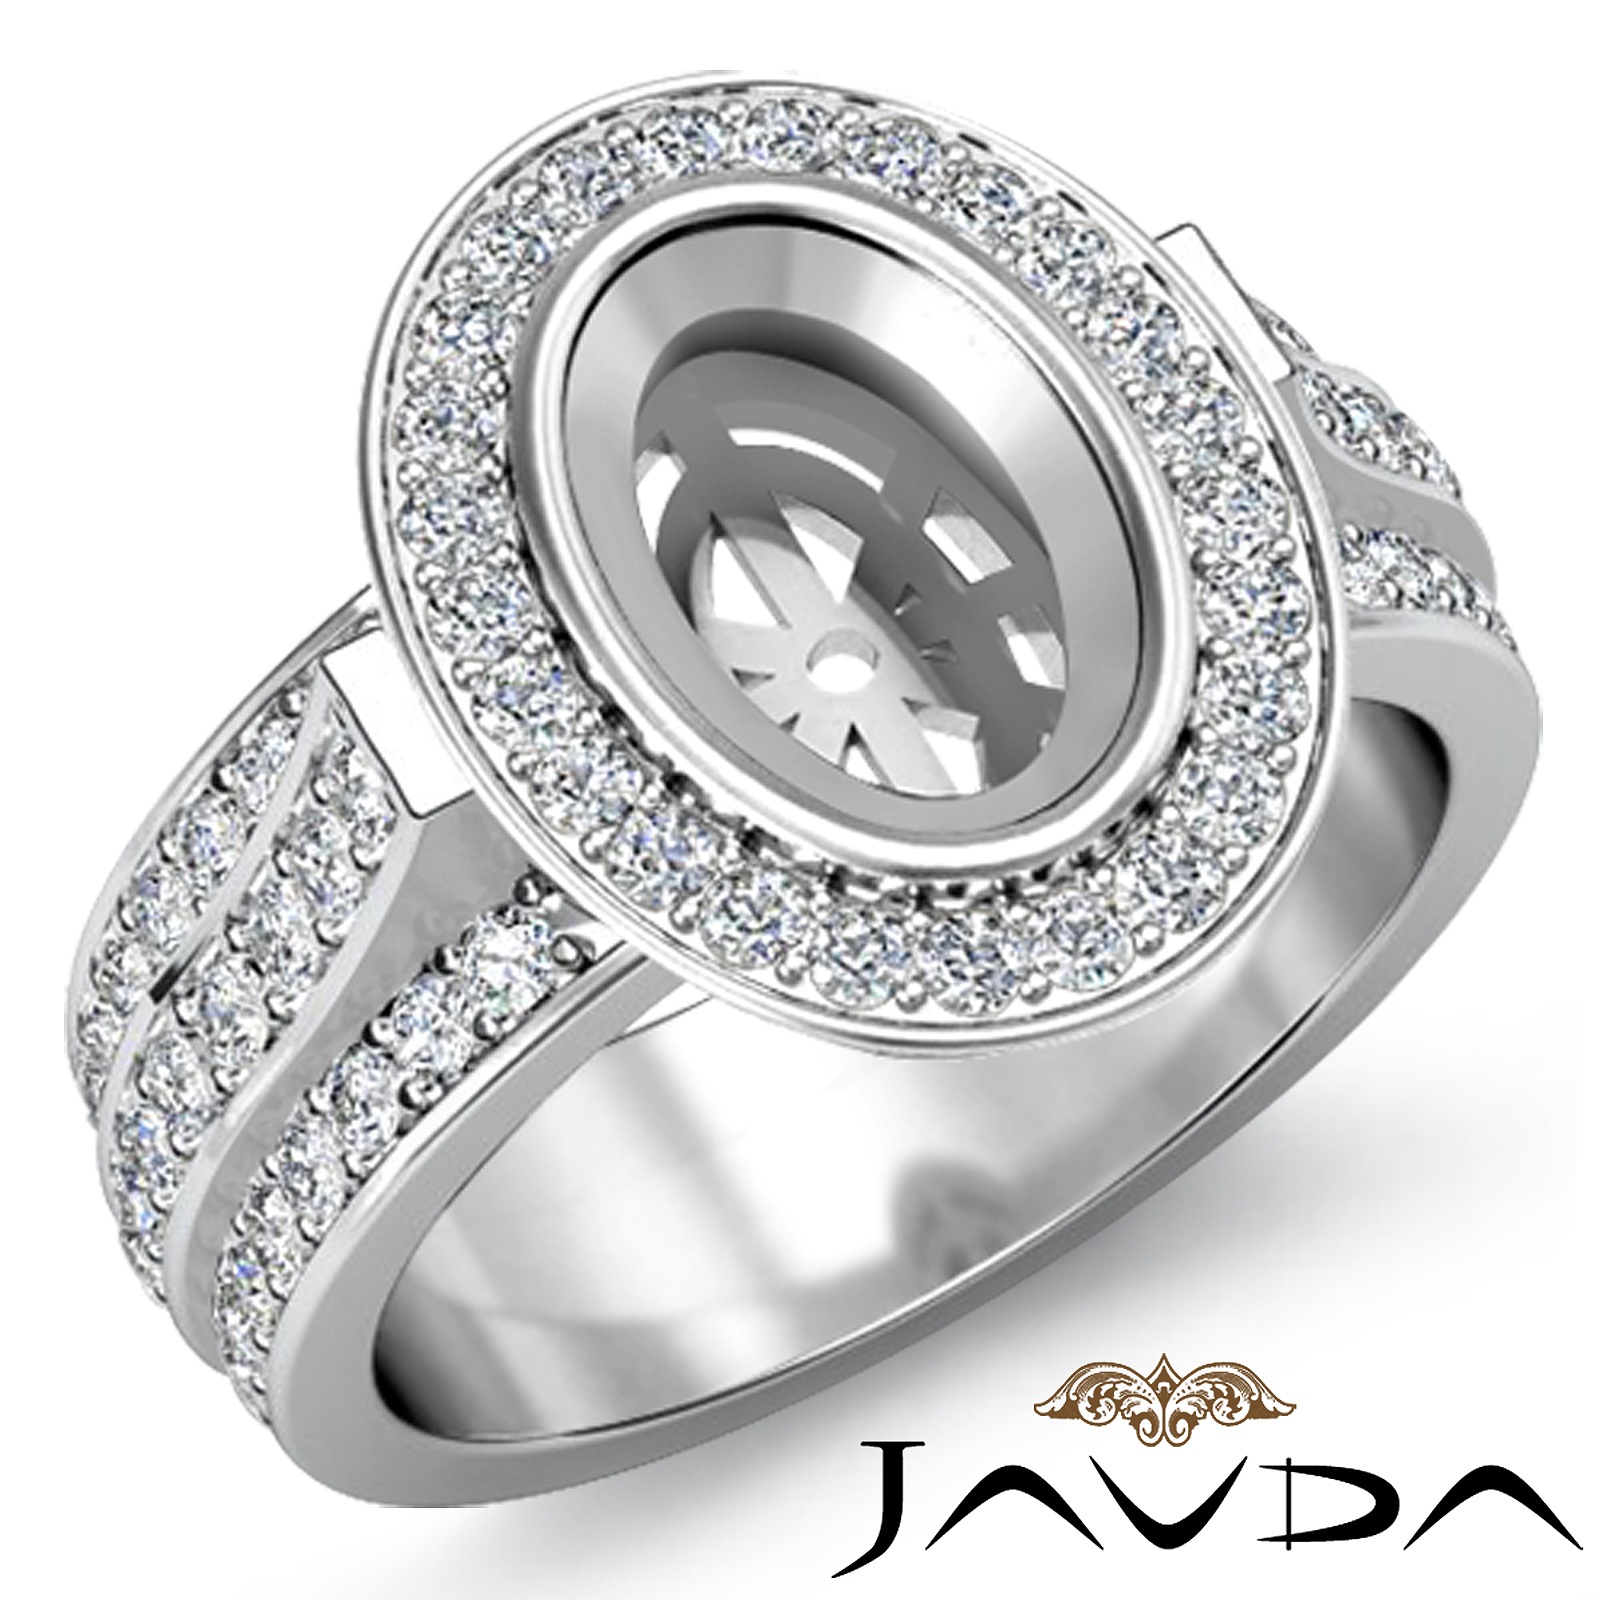 Diamond Engagement Halo Pave Setting Ring Oval Semi Mount 18k White Gold 1 65